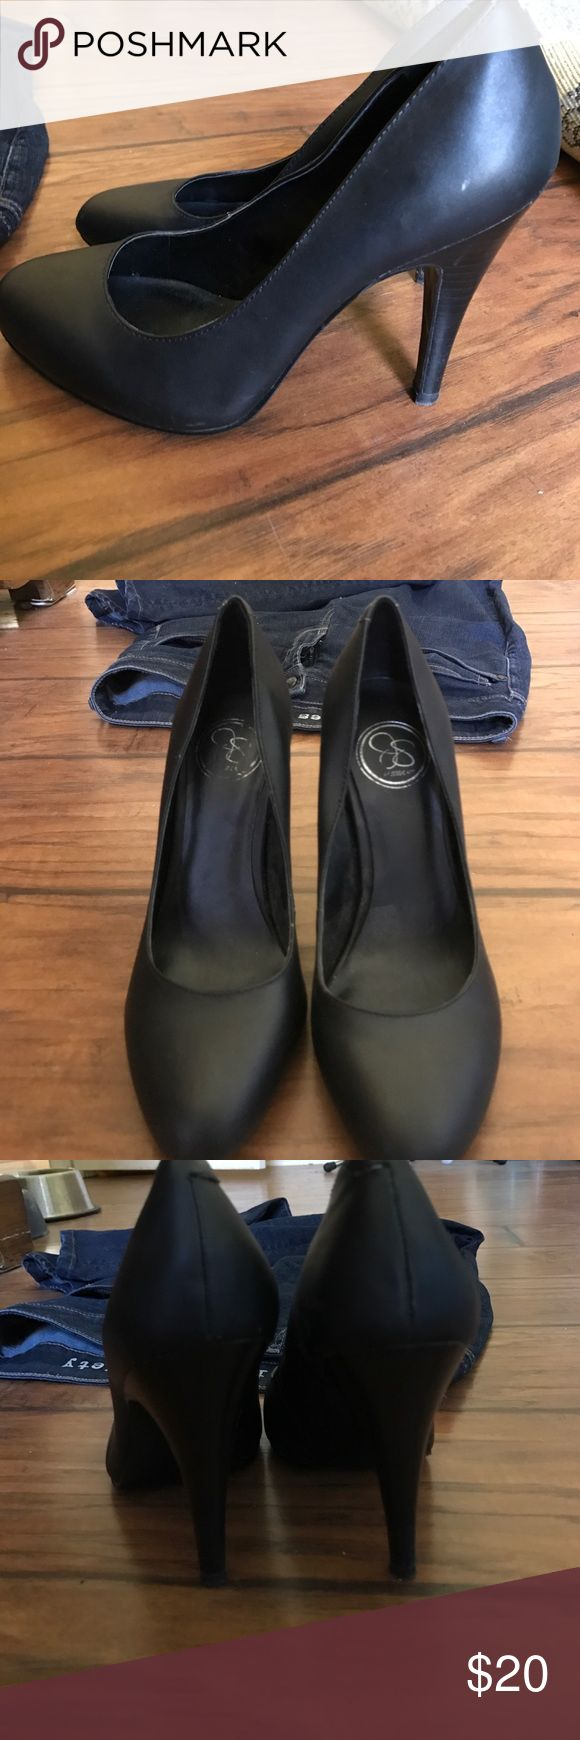 Jessica Simpson black pumps A pair of black Jessica Simpson pumps. They've been worn only once, and are perfect for interviews or business meetings! They boast a 4 inch heel and look great with any outfit 😍 Jessica Simpson Shoes Heels